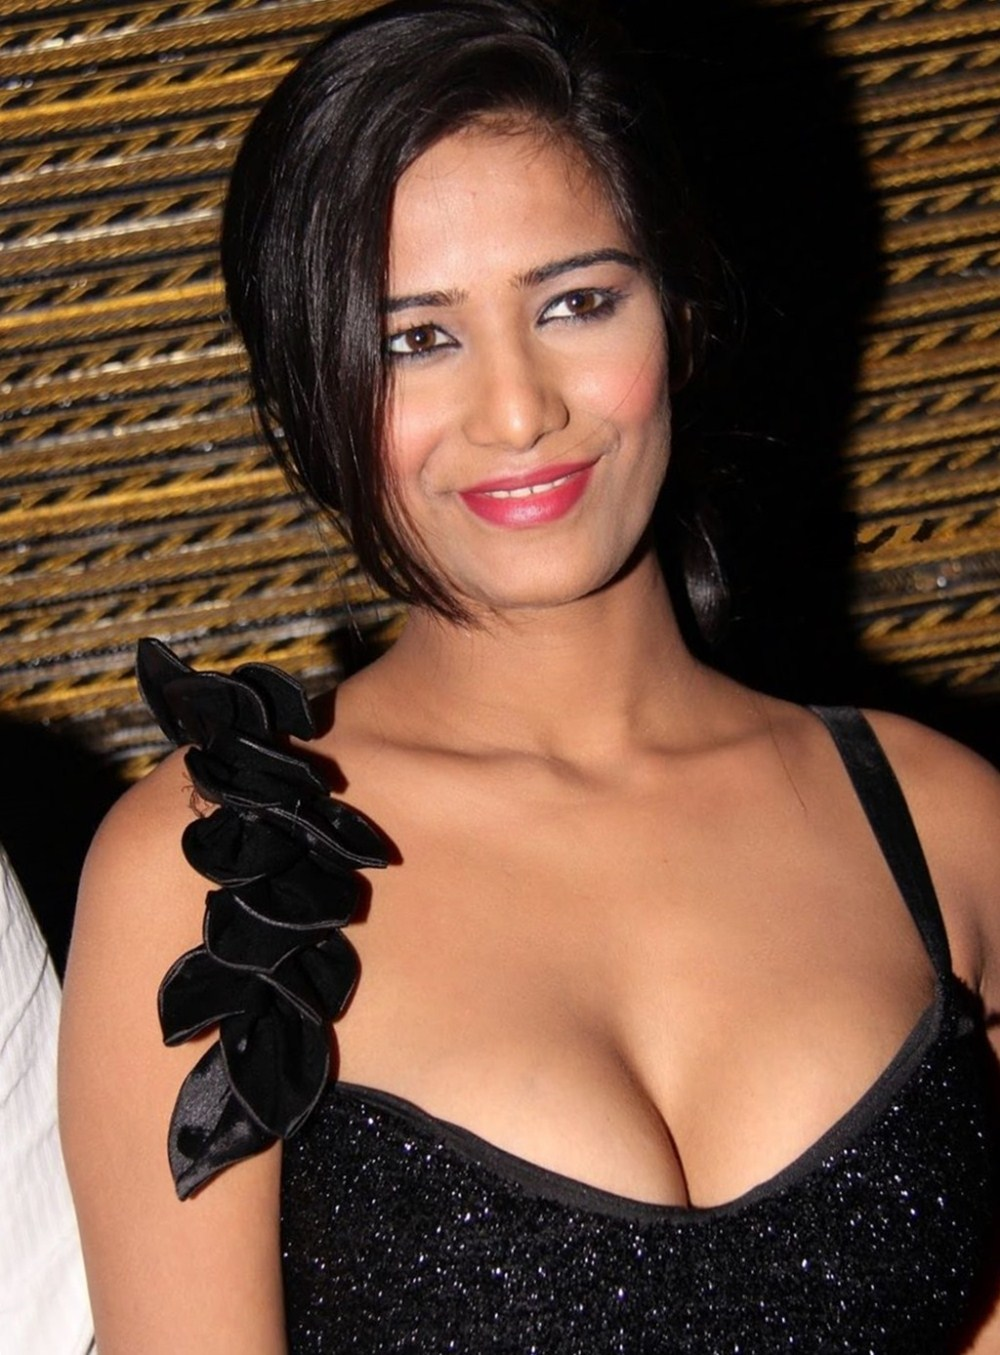 Poonam Pandey Hot And Sexy Hd Wallpapers Download Free -1921